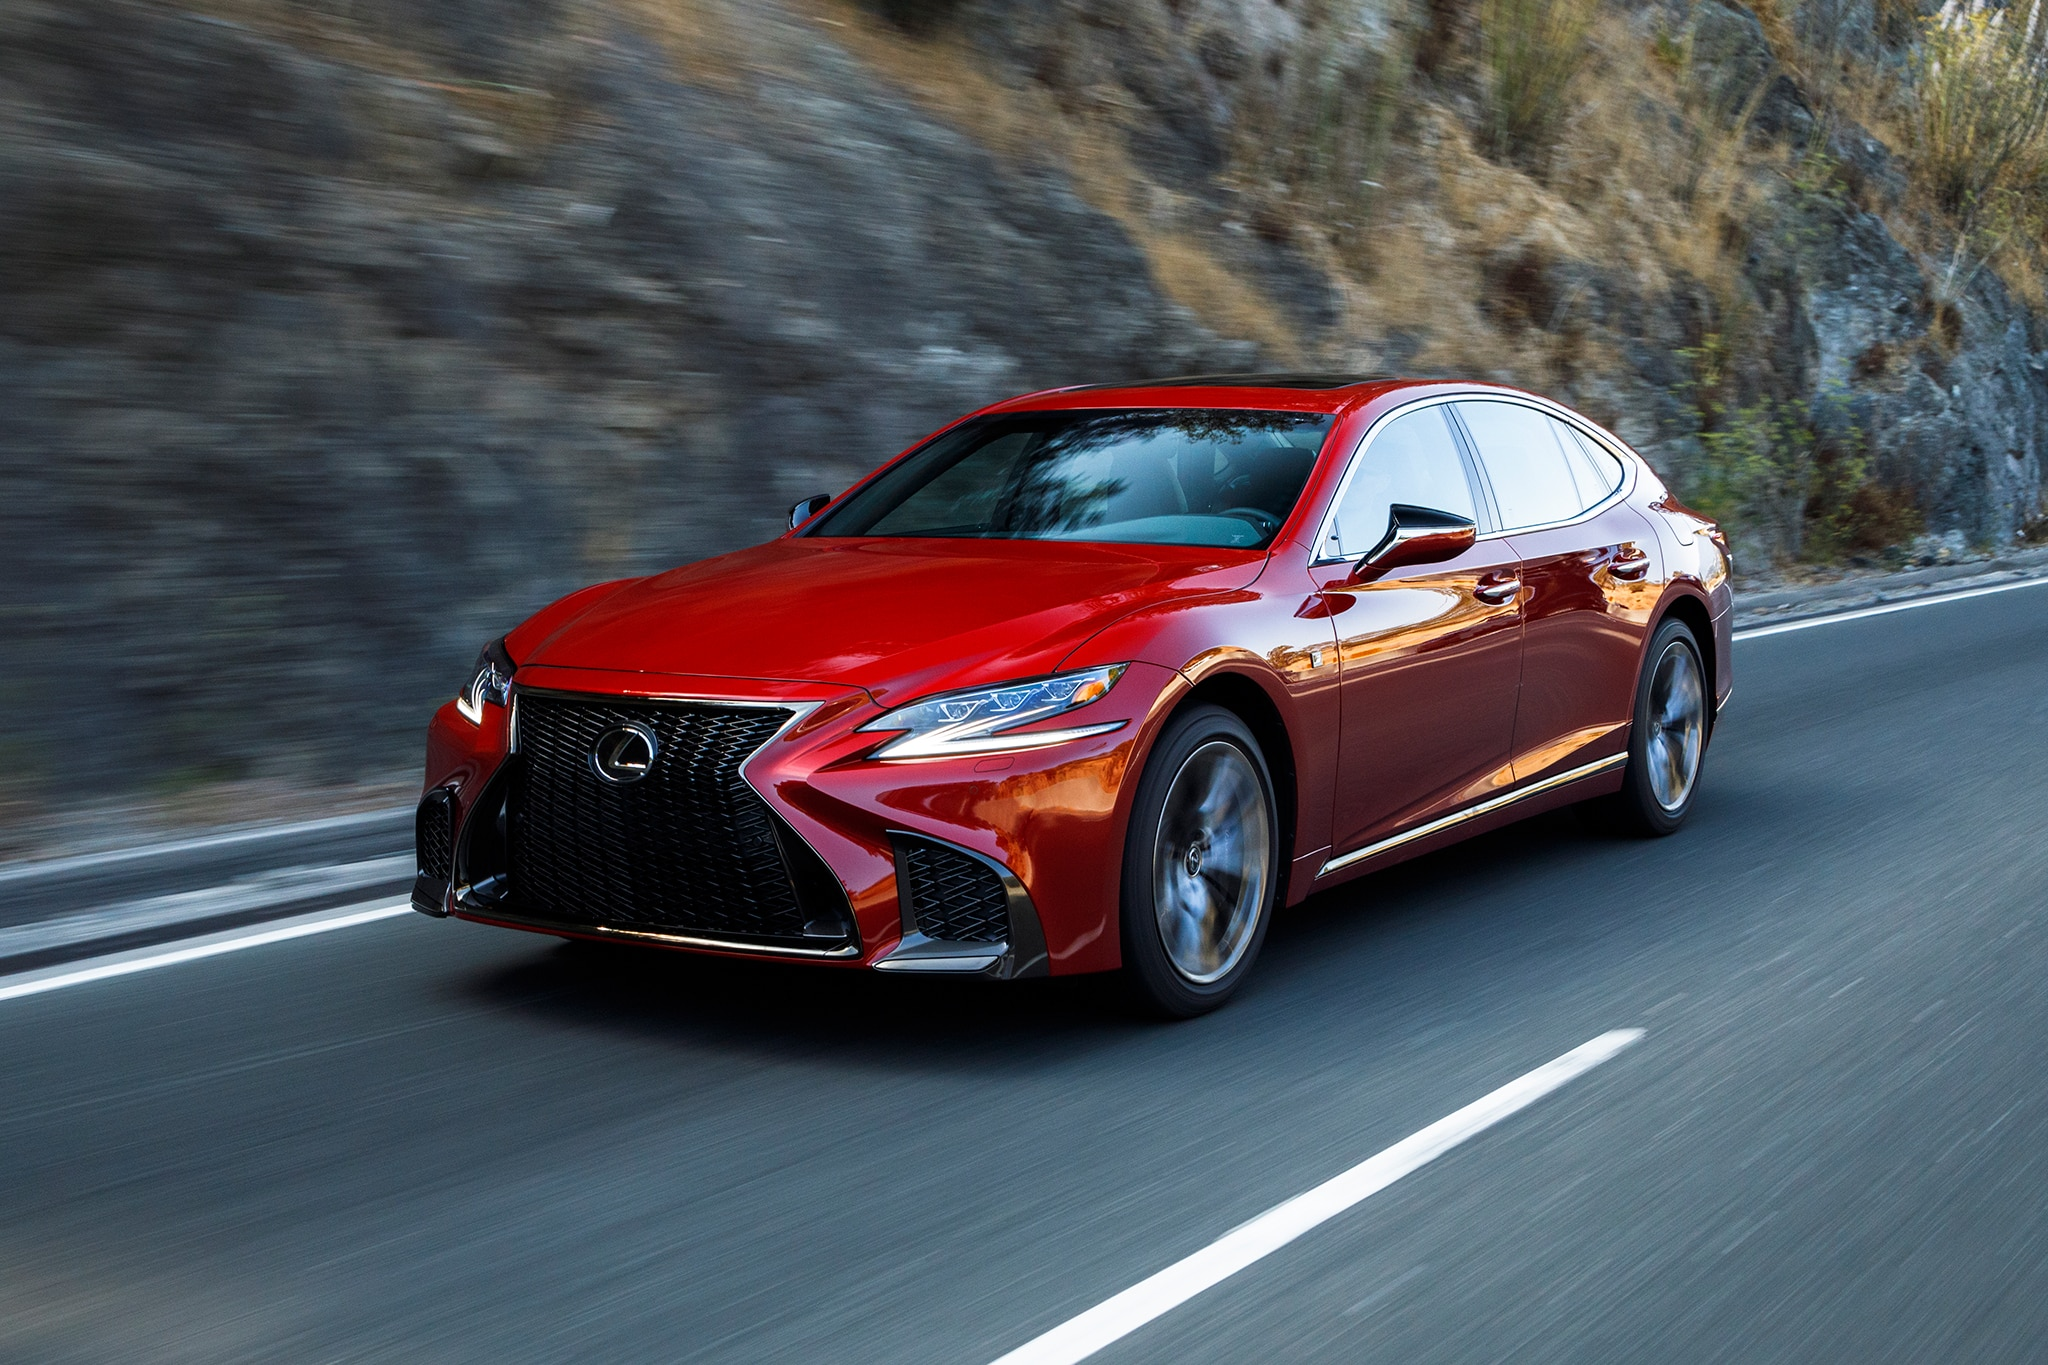 2019 Lexus Lc 500 Preview >> 2018 Lexus Ls 500 Specs - New Car Release Date and Review 2018 | Amanda Felicia